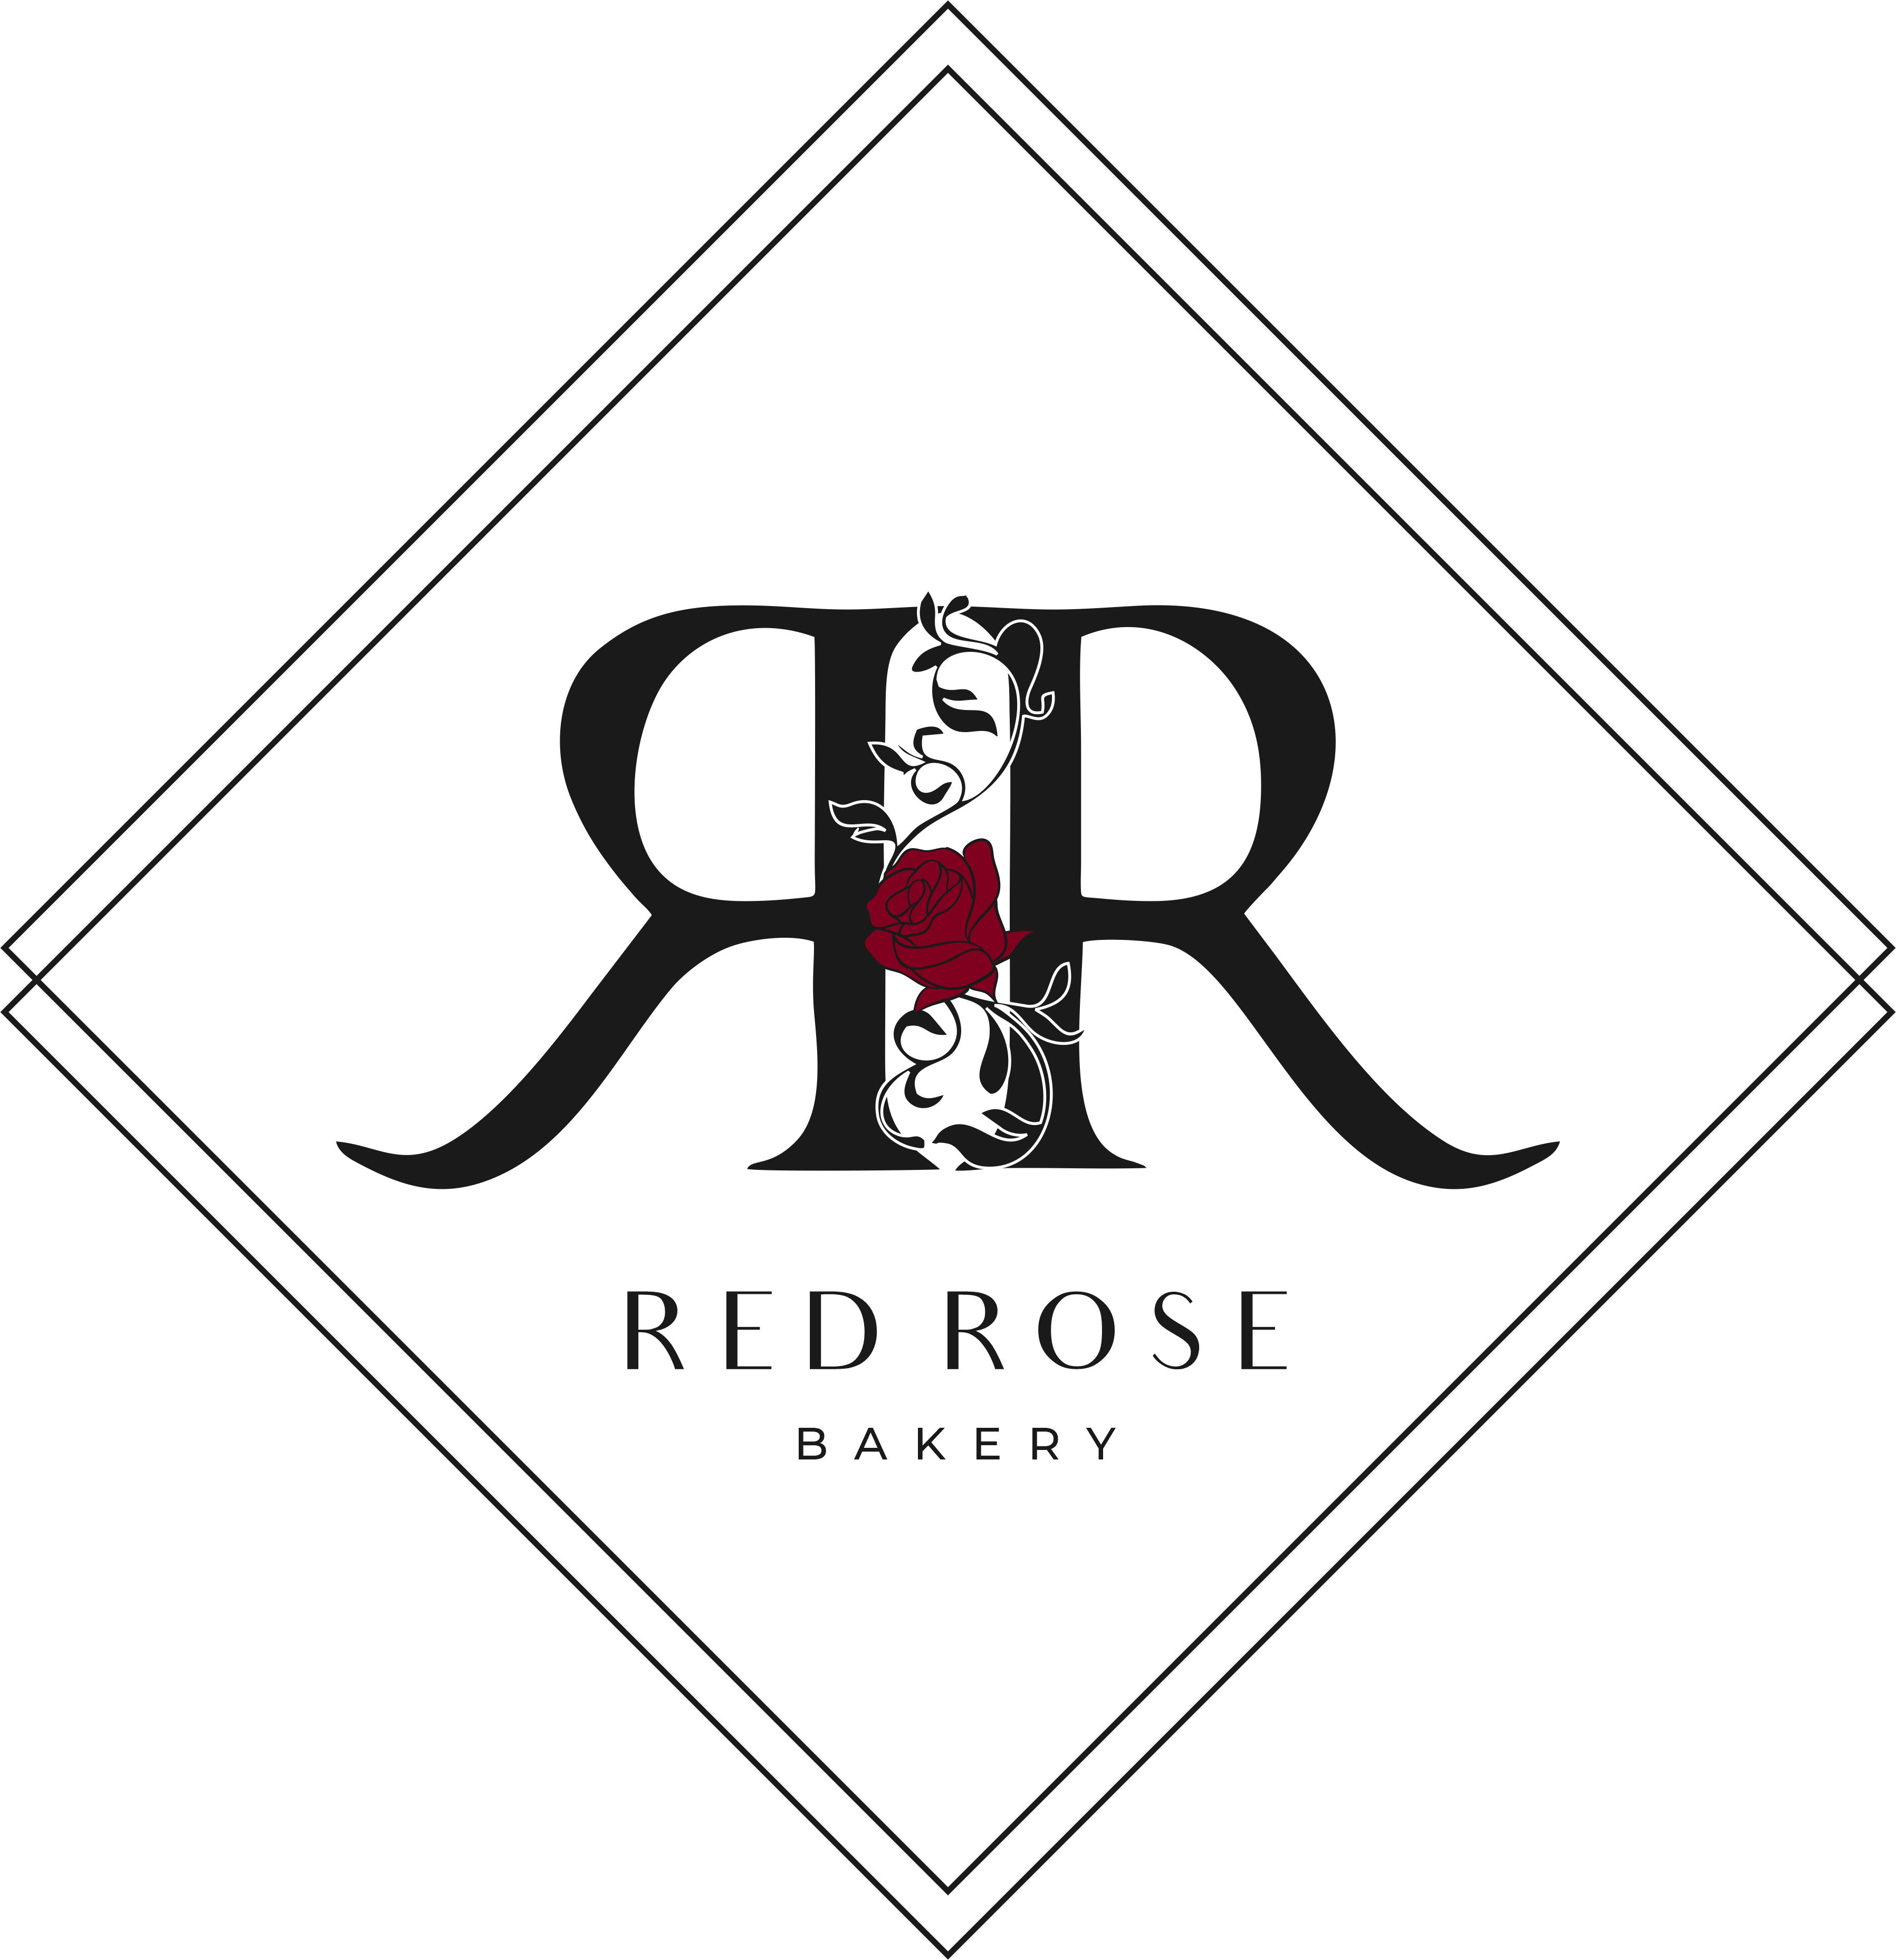 Red Rose Bakery